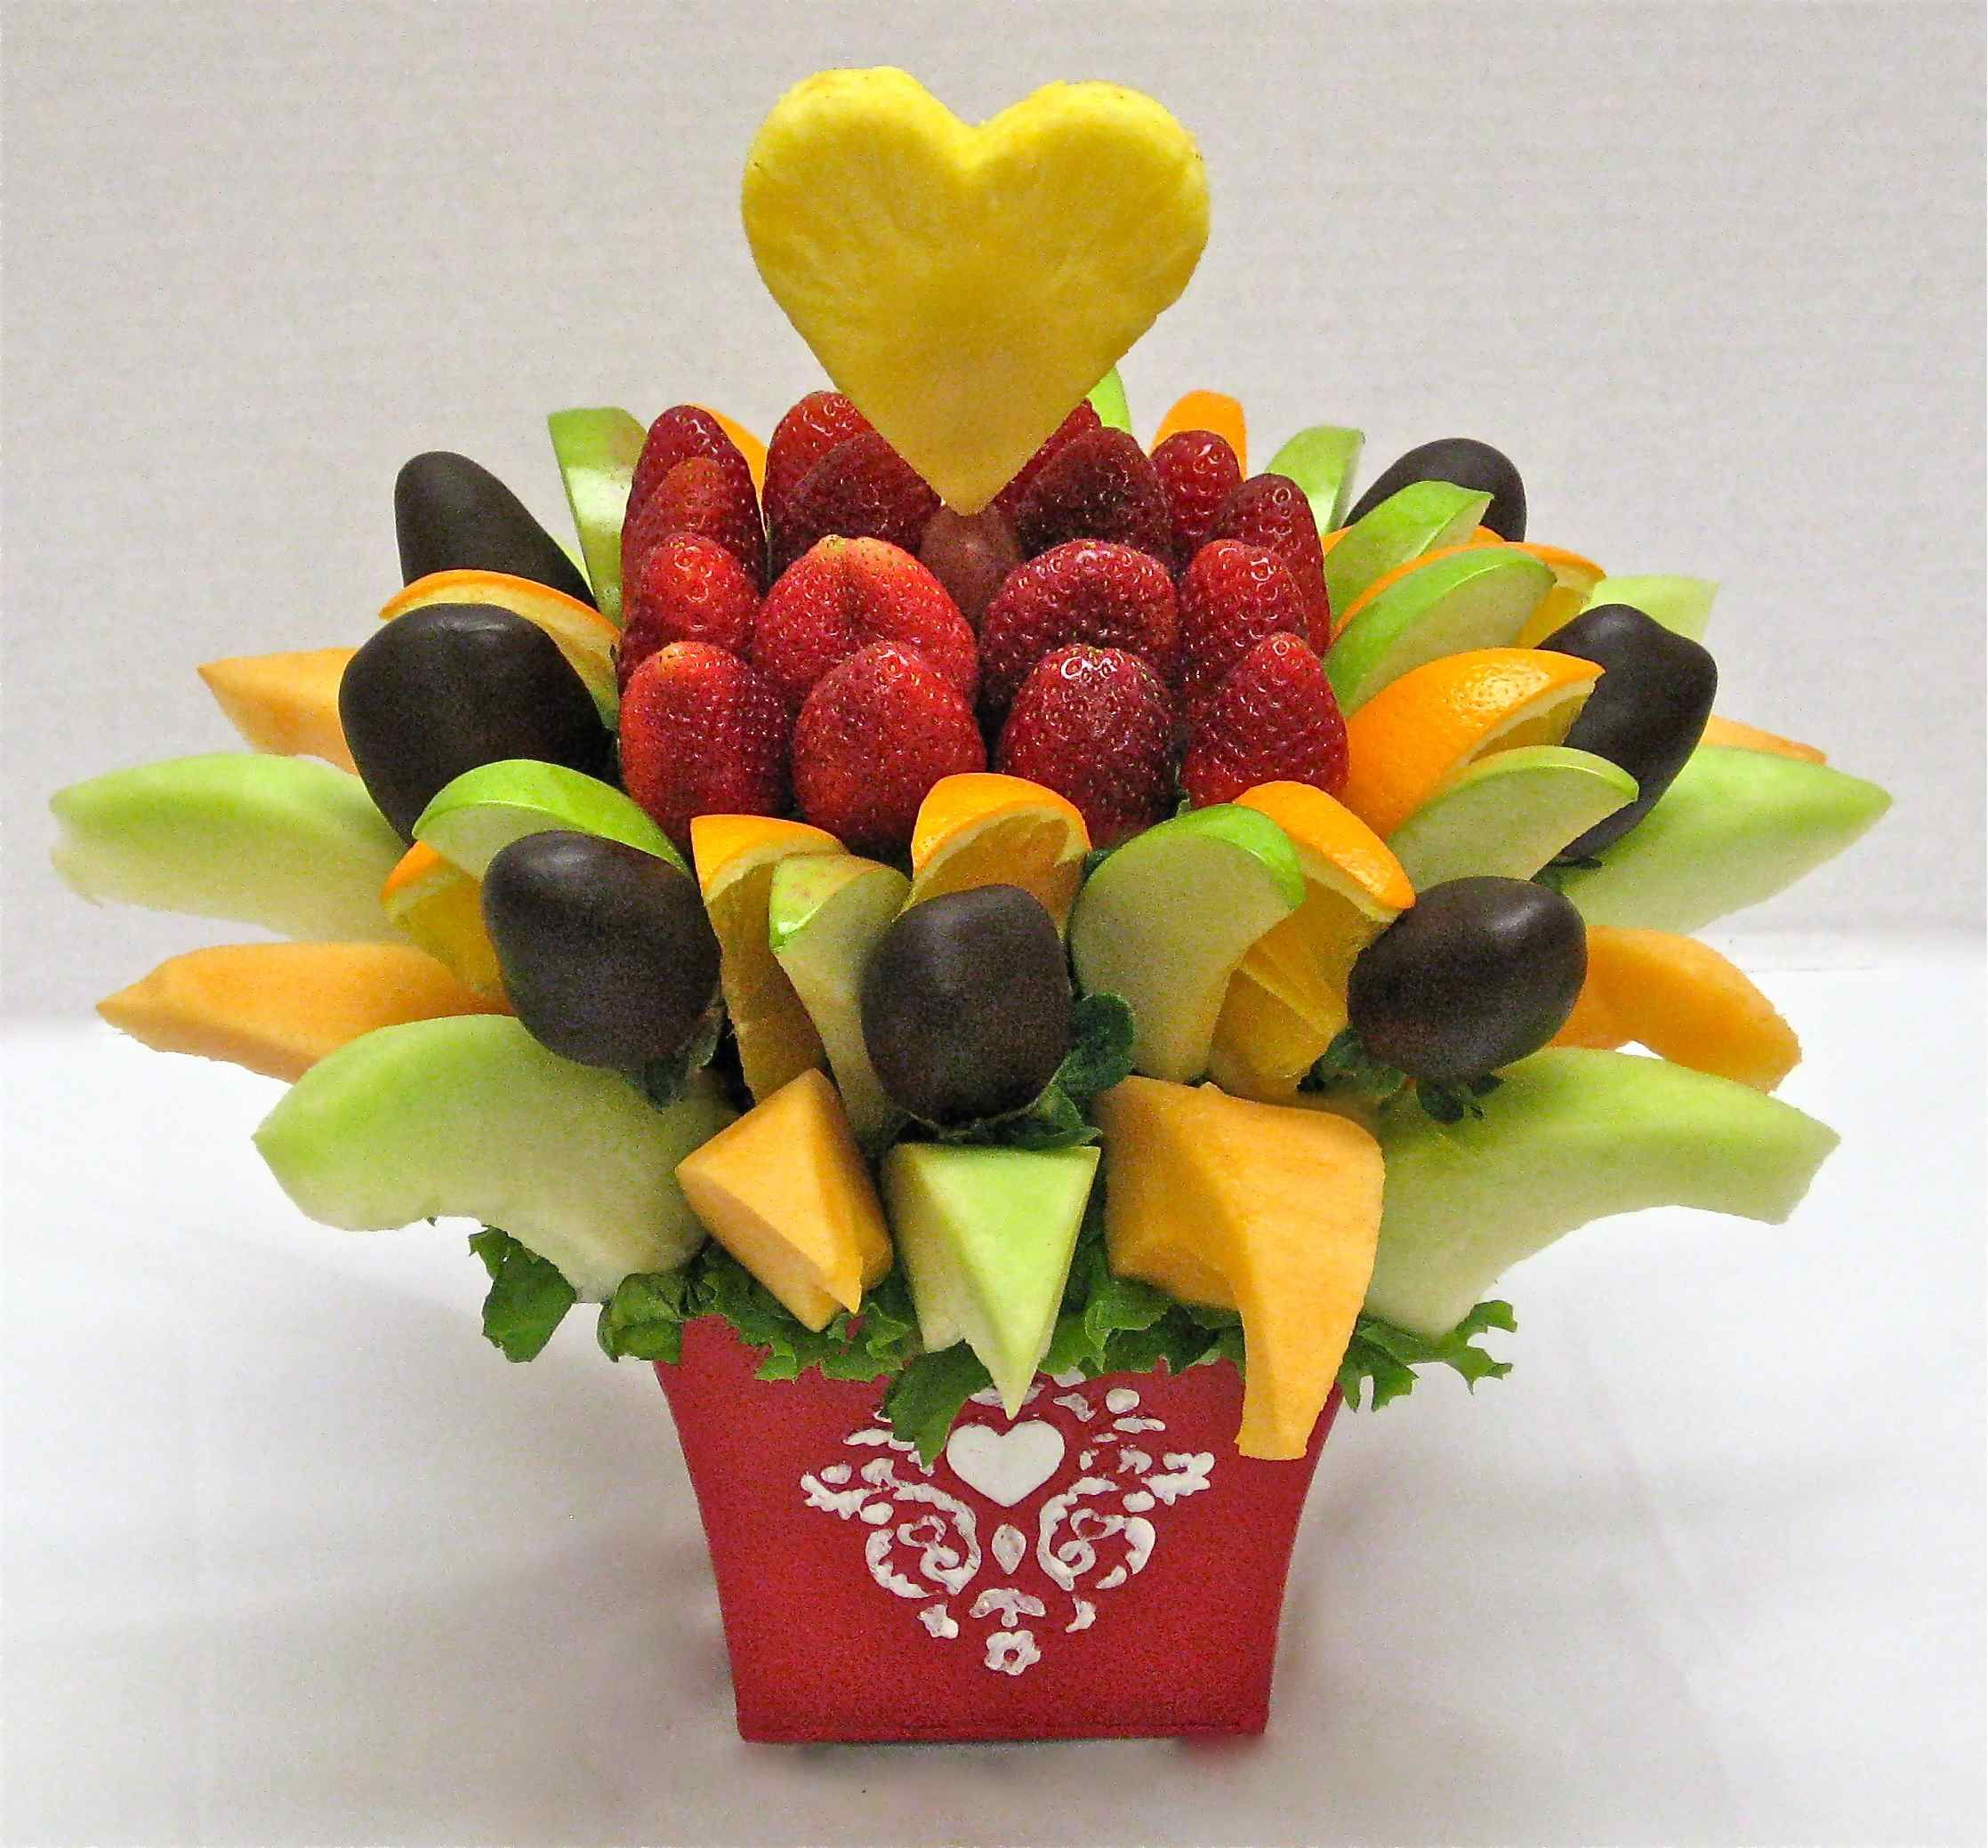 How to make a do it yourself edible fruit arrangement Fruit bouquet